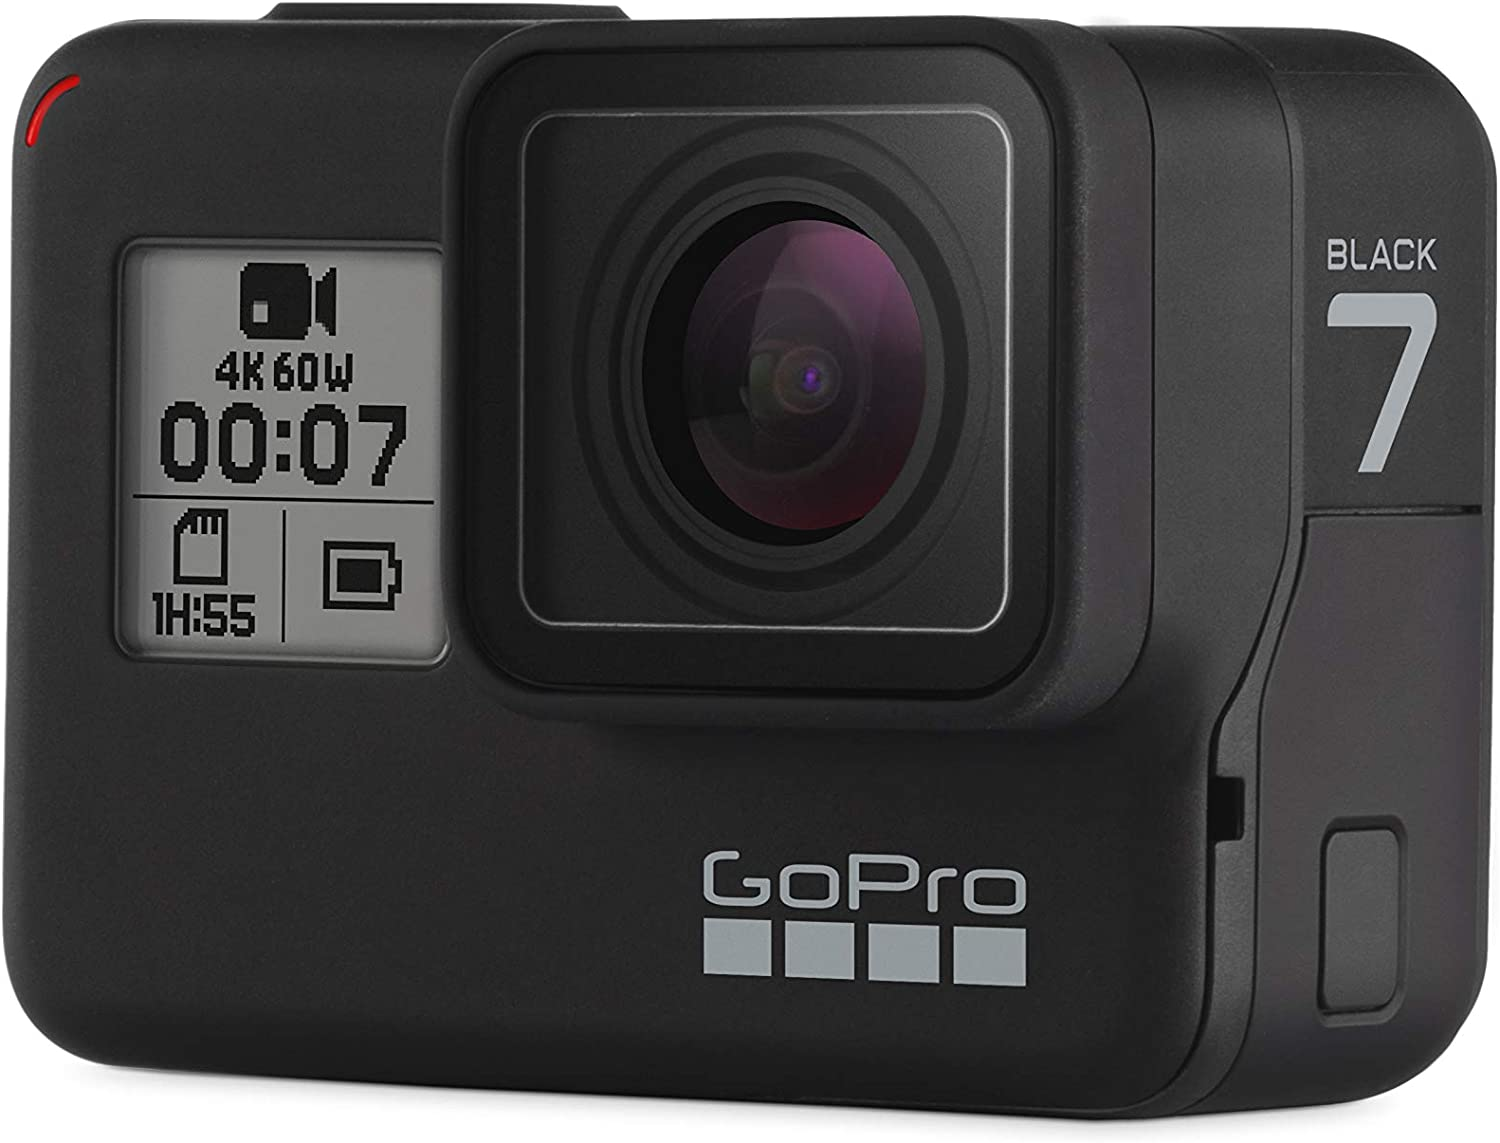 Amazon Com Gopro Hero7 Black Waterproof Action Camera With Touch Screen 4k Ultra Hd Video 12mp Photos 720p Live Streaming Stabilization Camera Photo